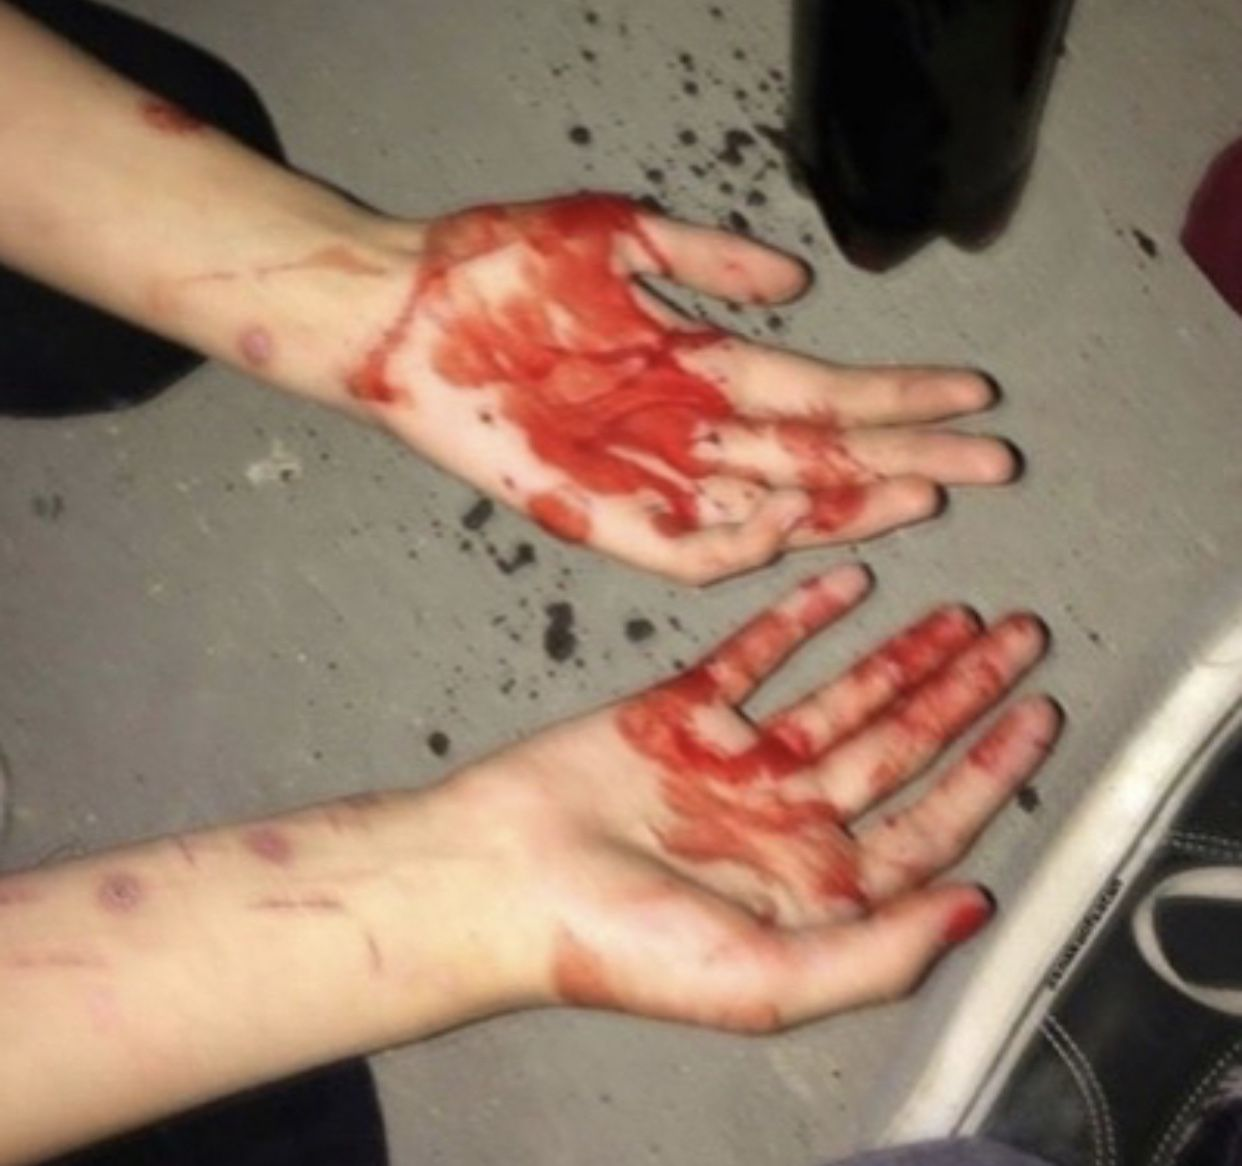 Pin by Amelie Deer on Clubs | Pinterest | Blood, Gore ...